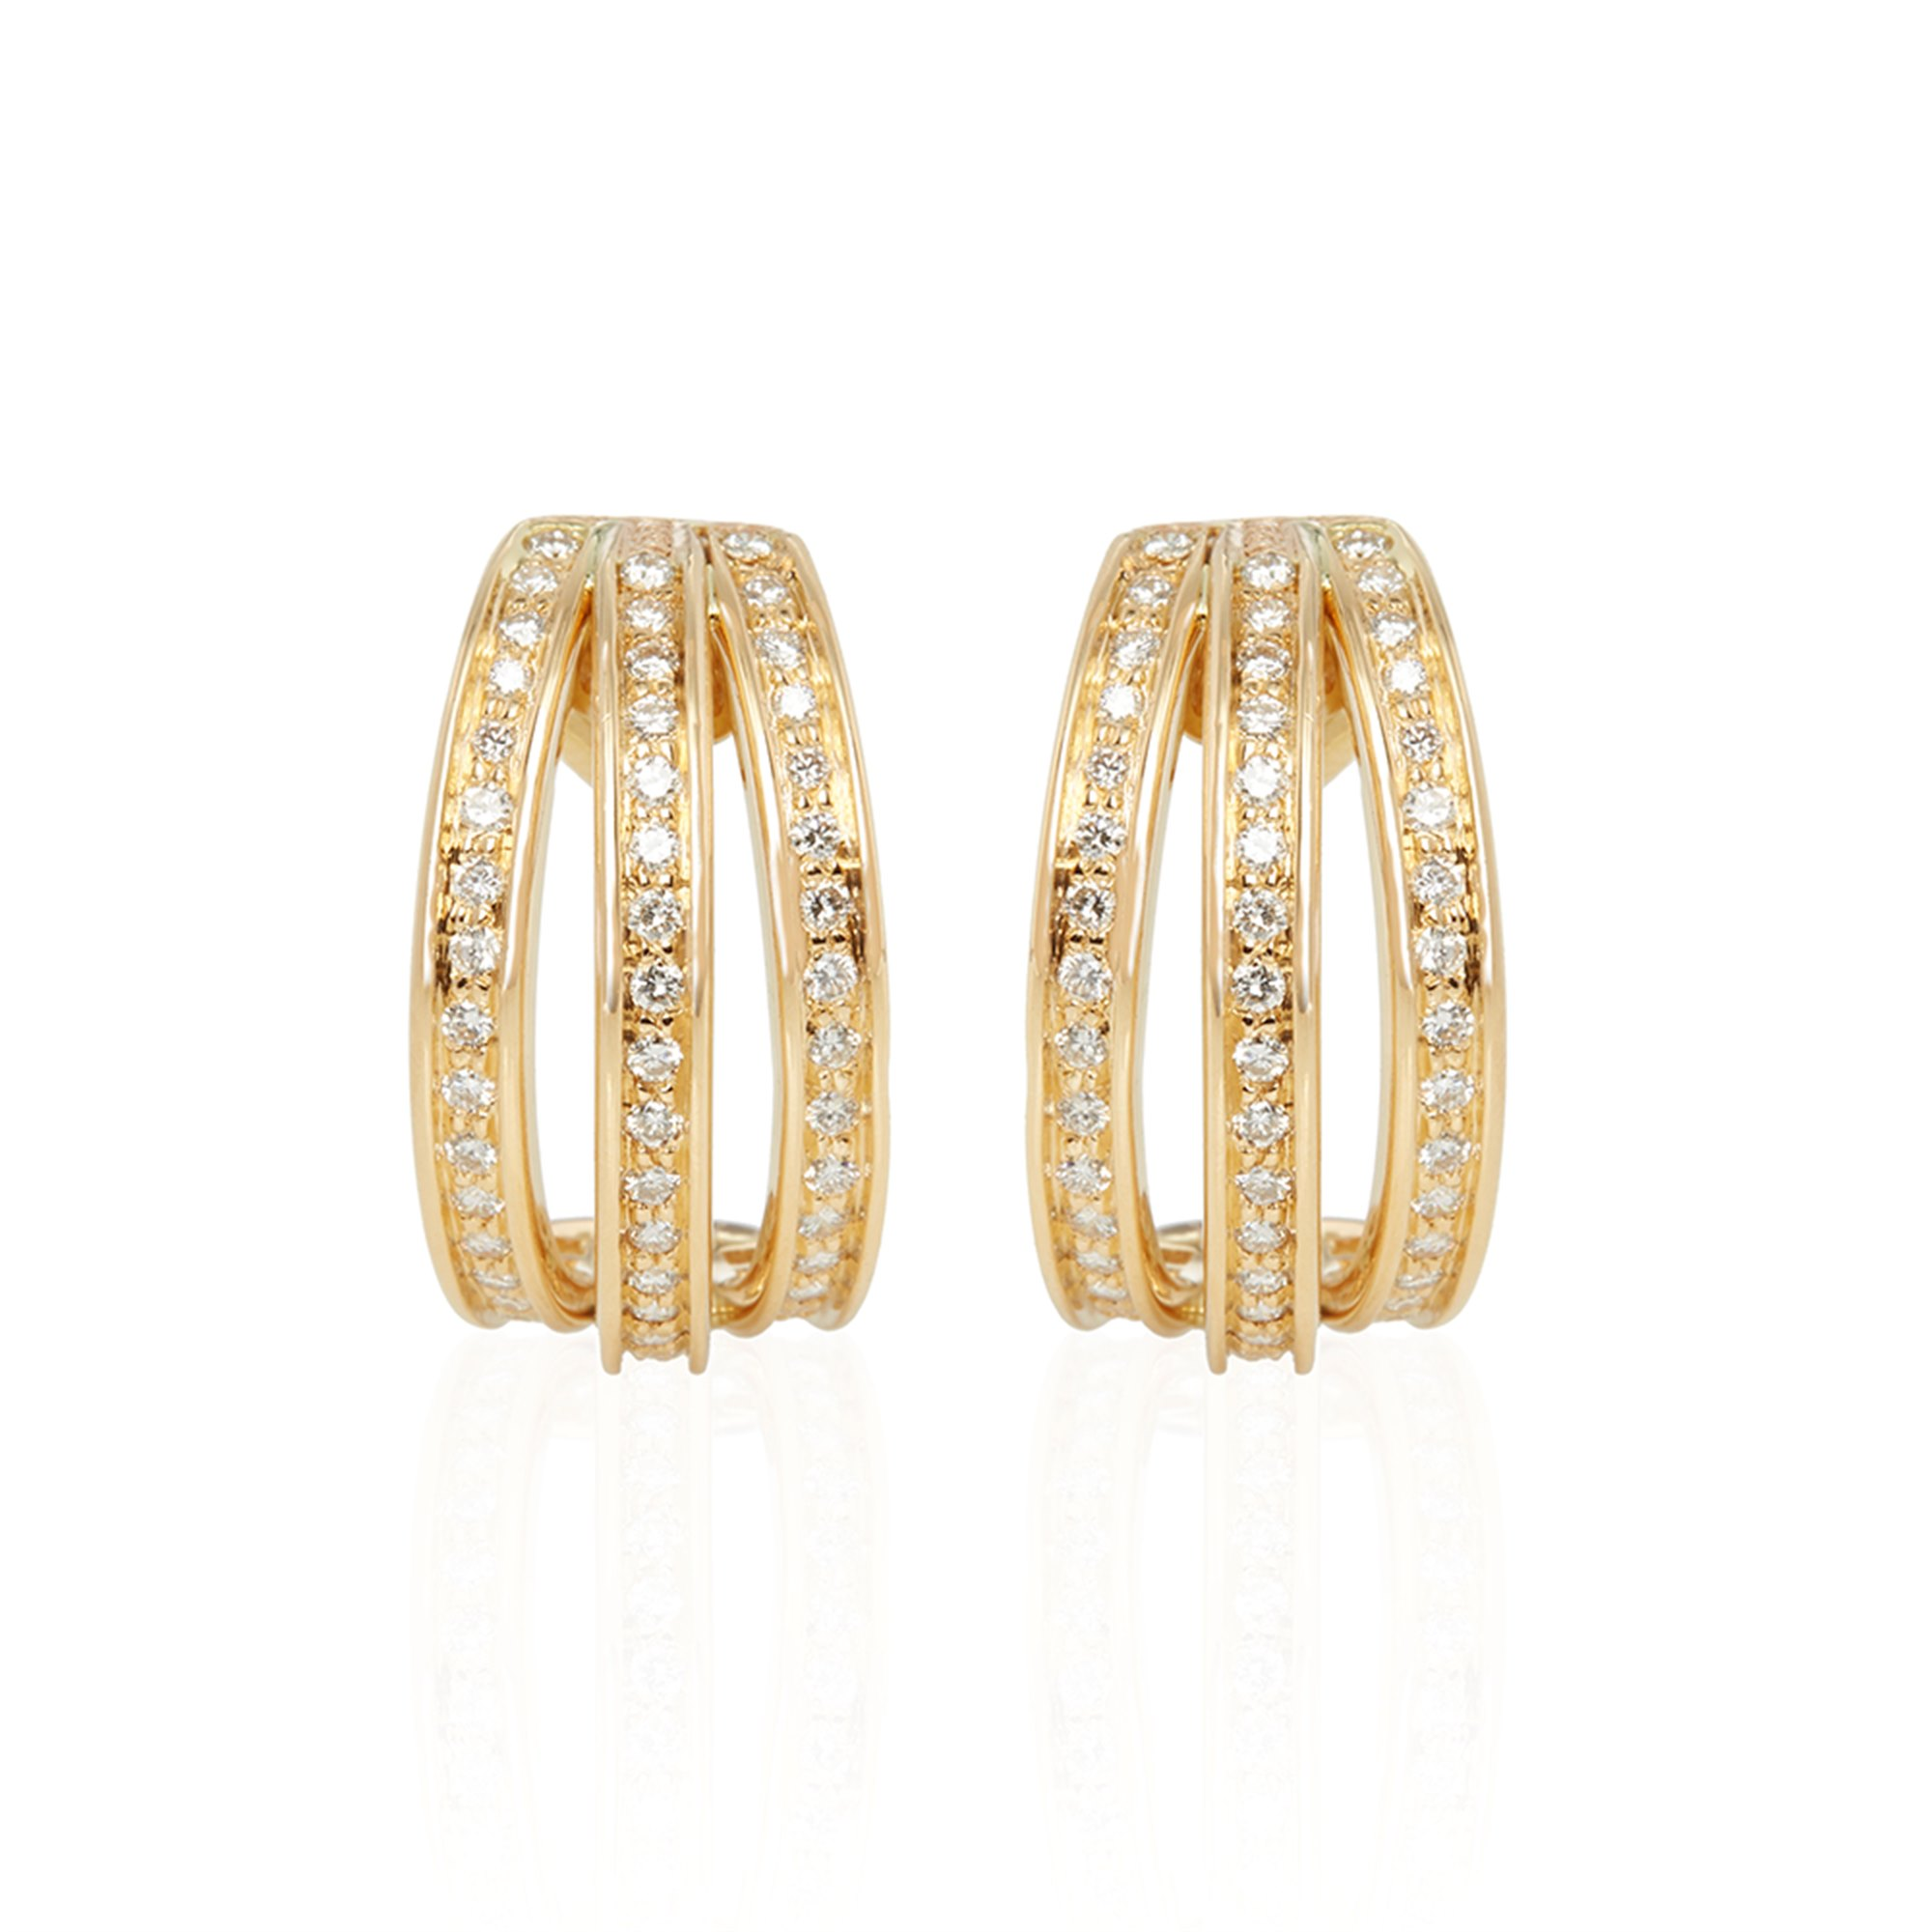 Cartier 18k Yellow Gold Three Row Diamond Earrings